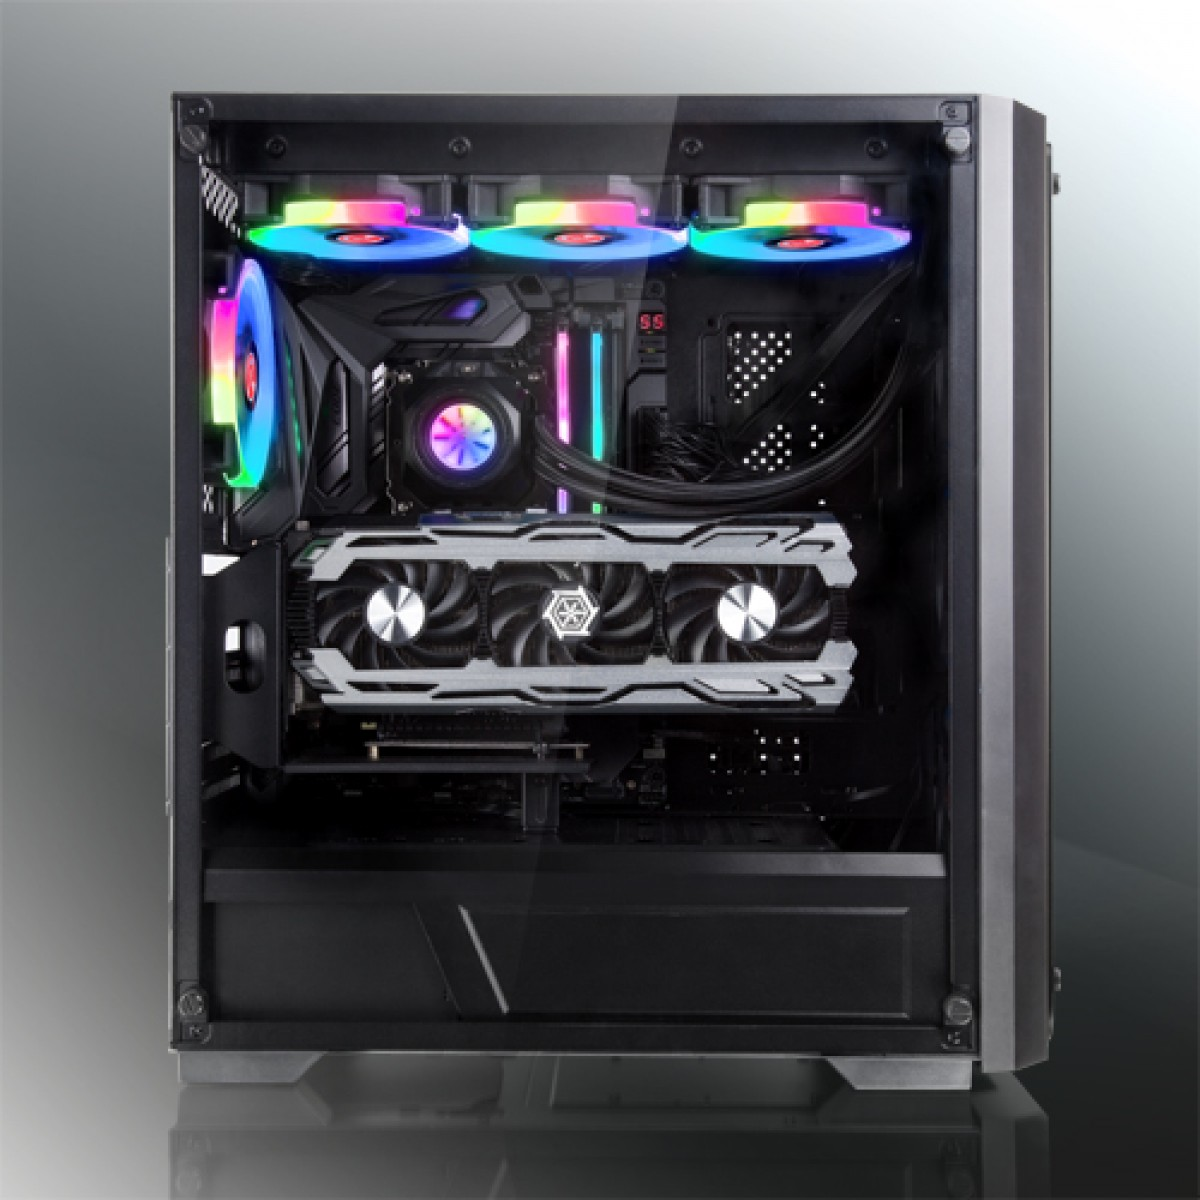 Water Cooler Raijintek ORCUS 240 RBW, 240mm, Intel-AMD, 0R10B00105